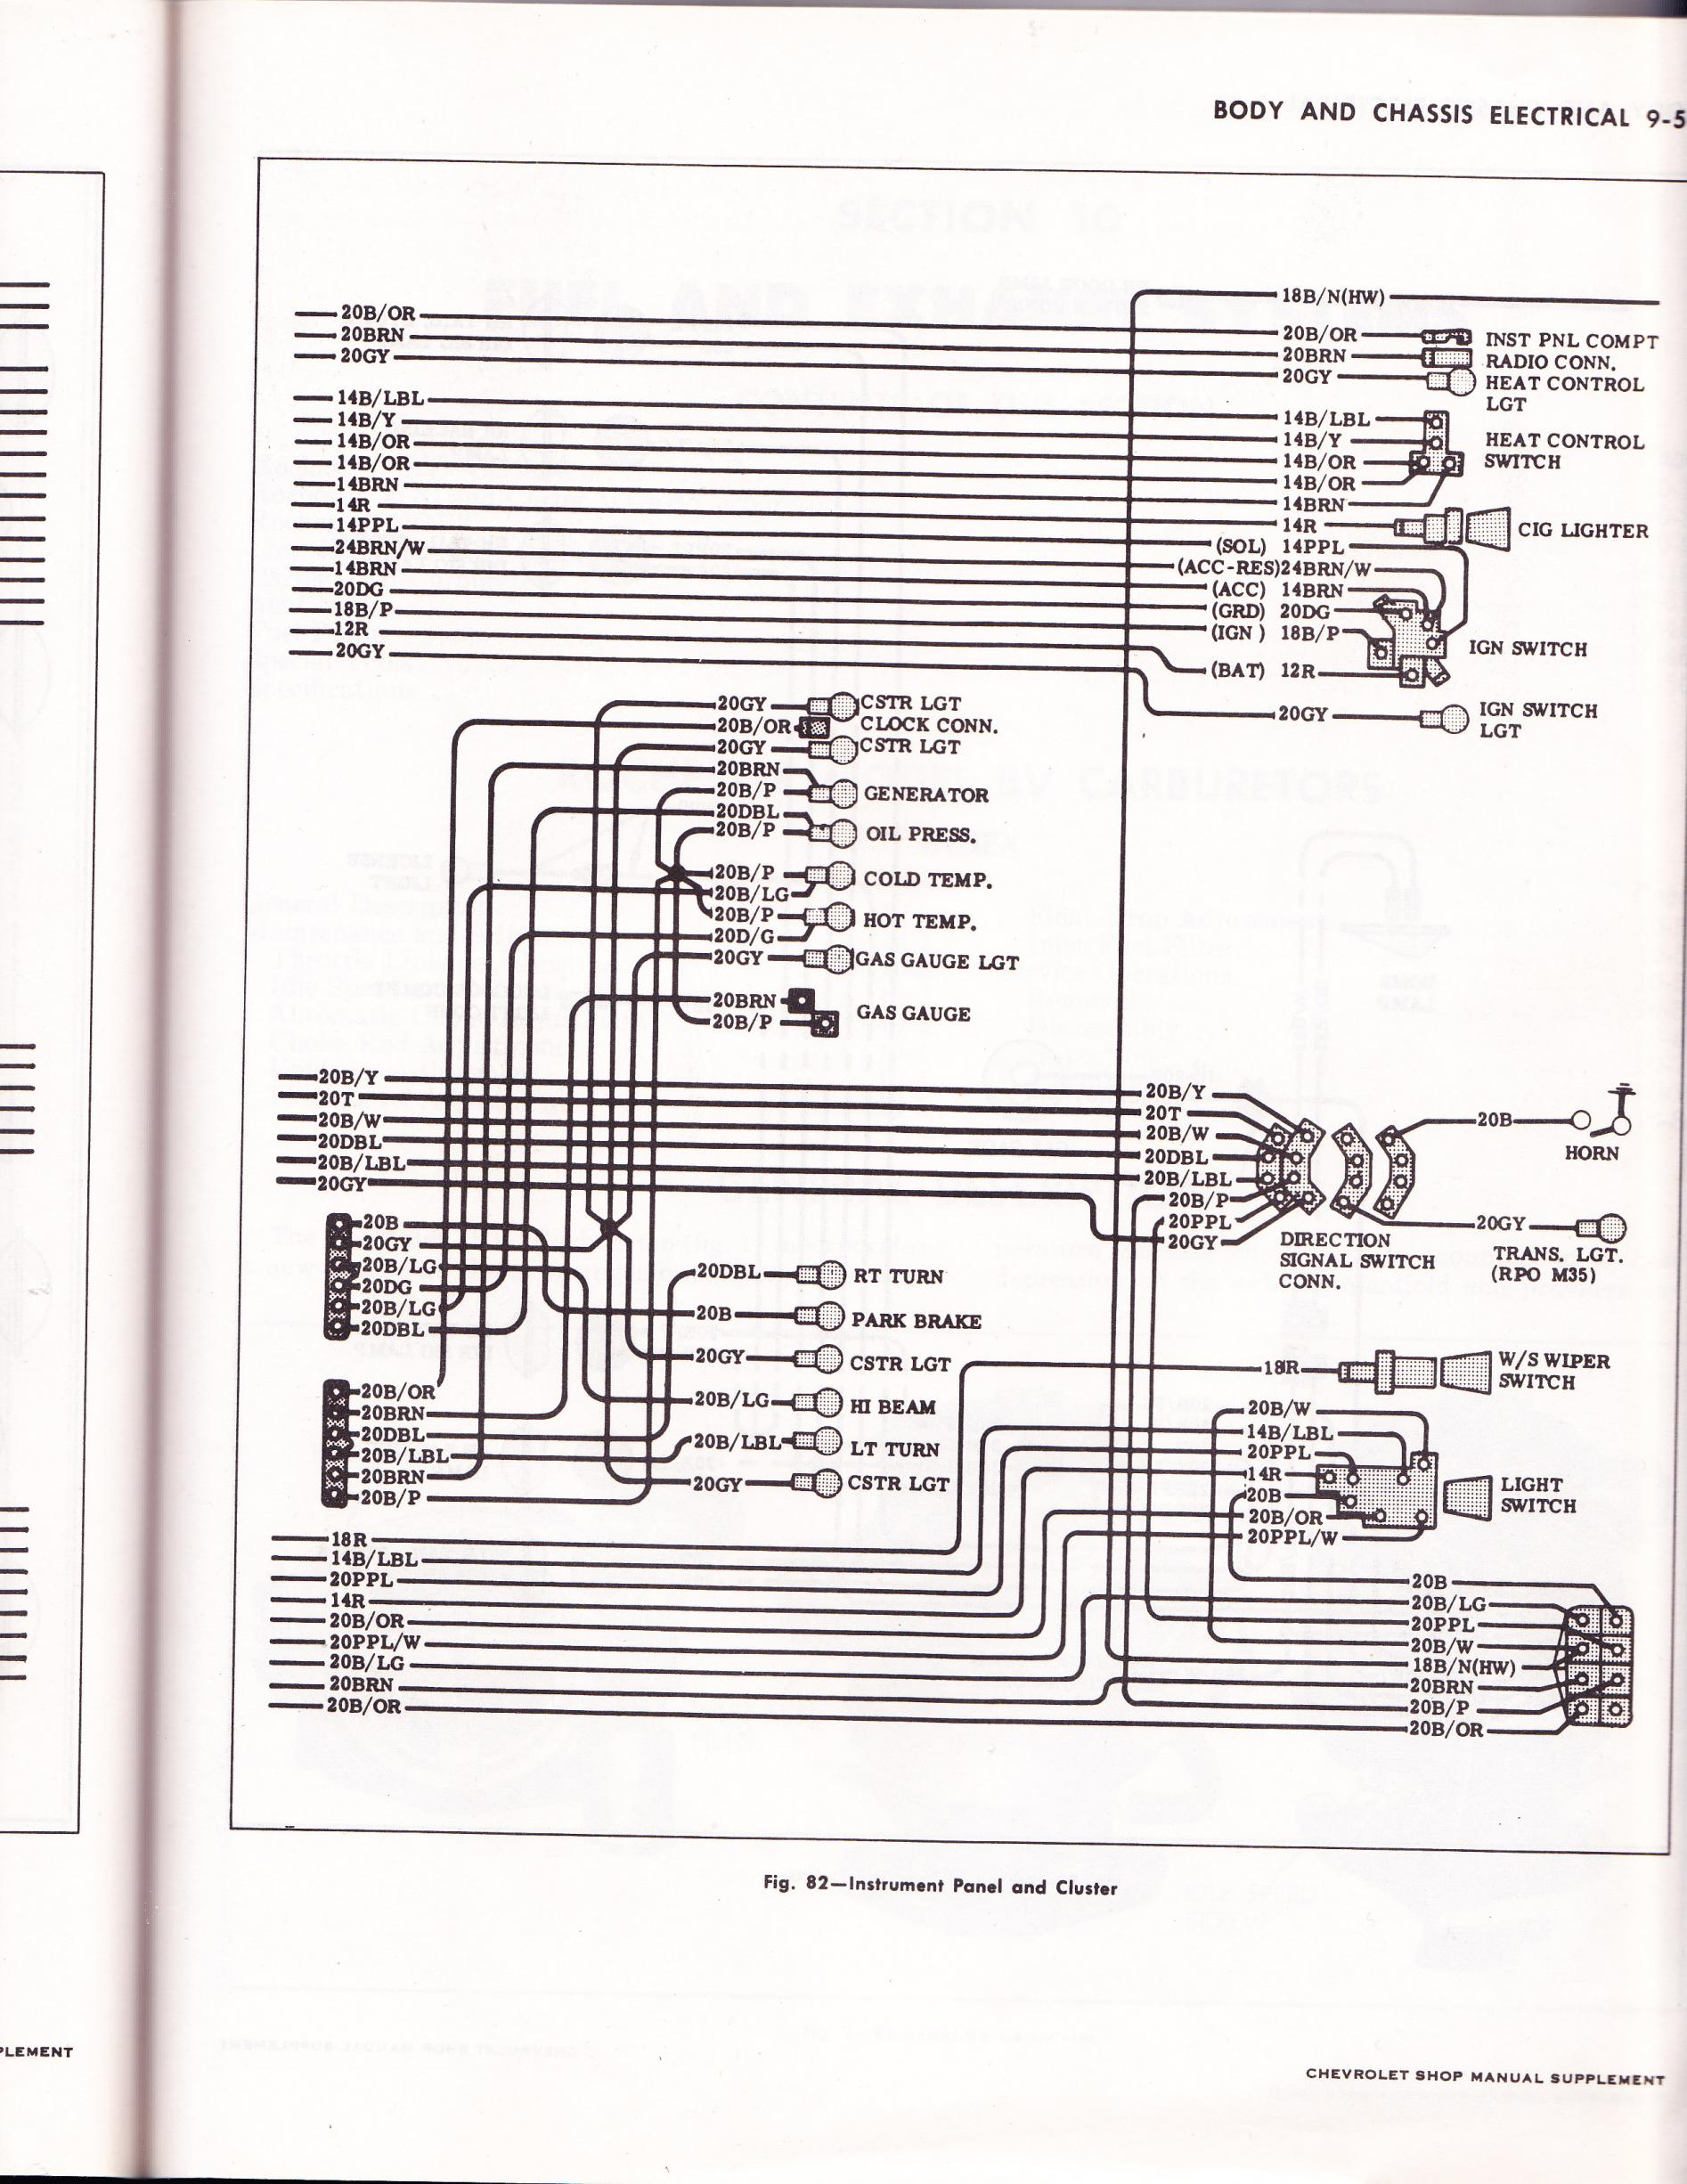 1964 impala fuse box diagram 1964 diy wiring diagrams 1964 impala tail lights lamps blowing fuse the h a m b